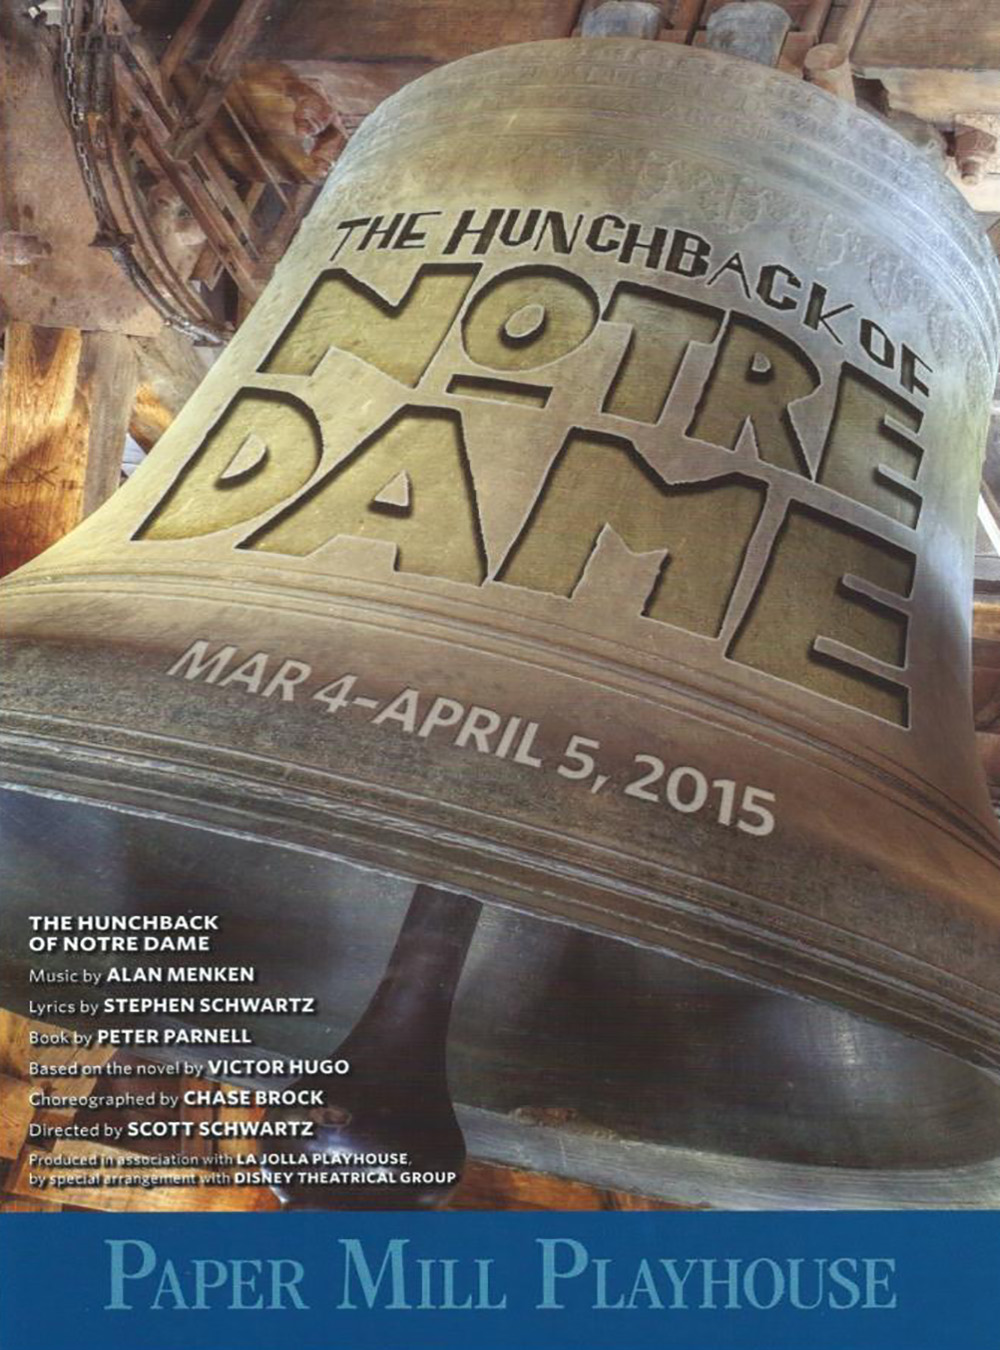 Hunchback of Notre Dame at Papermill Playhouse